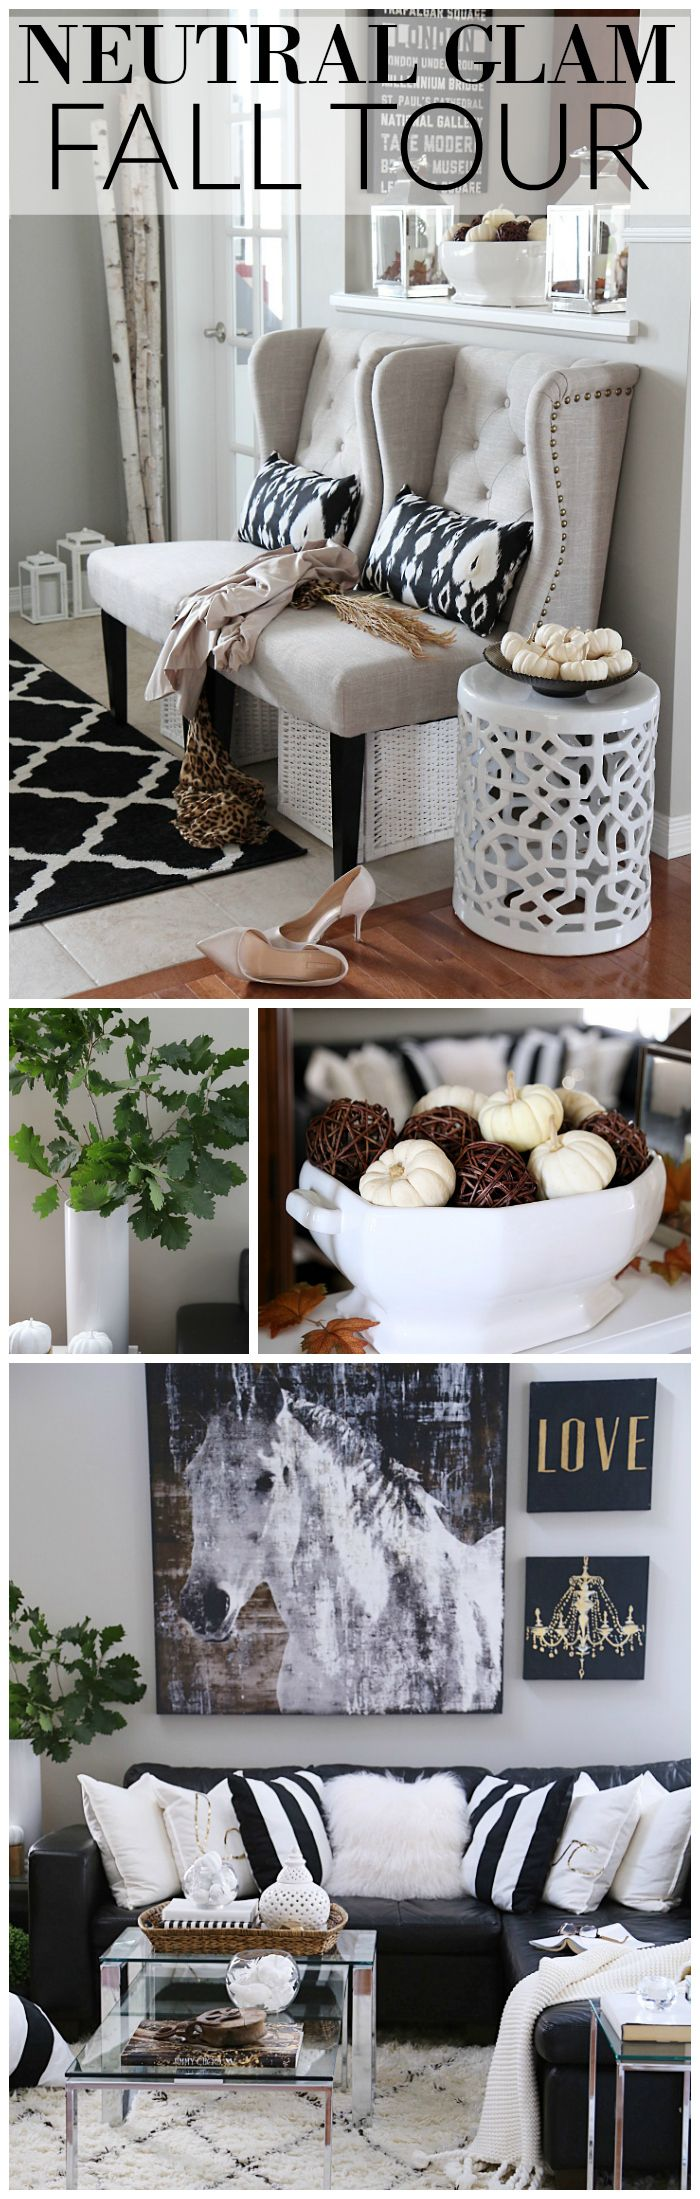 37 stenciled cinder block planter ideas and free 2017 from zola decor - Neutral Glam Fall Tour And Fall Decor Ideas